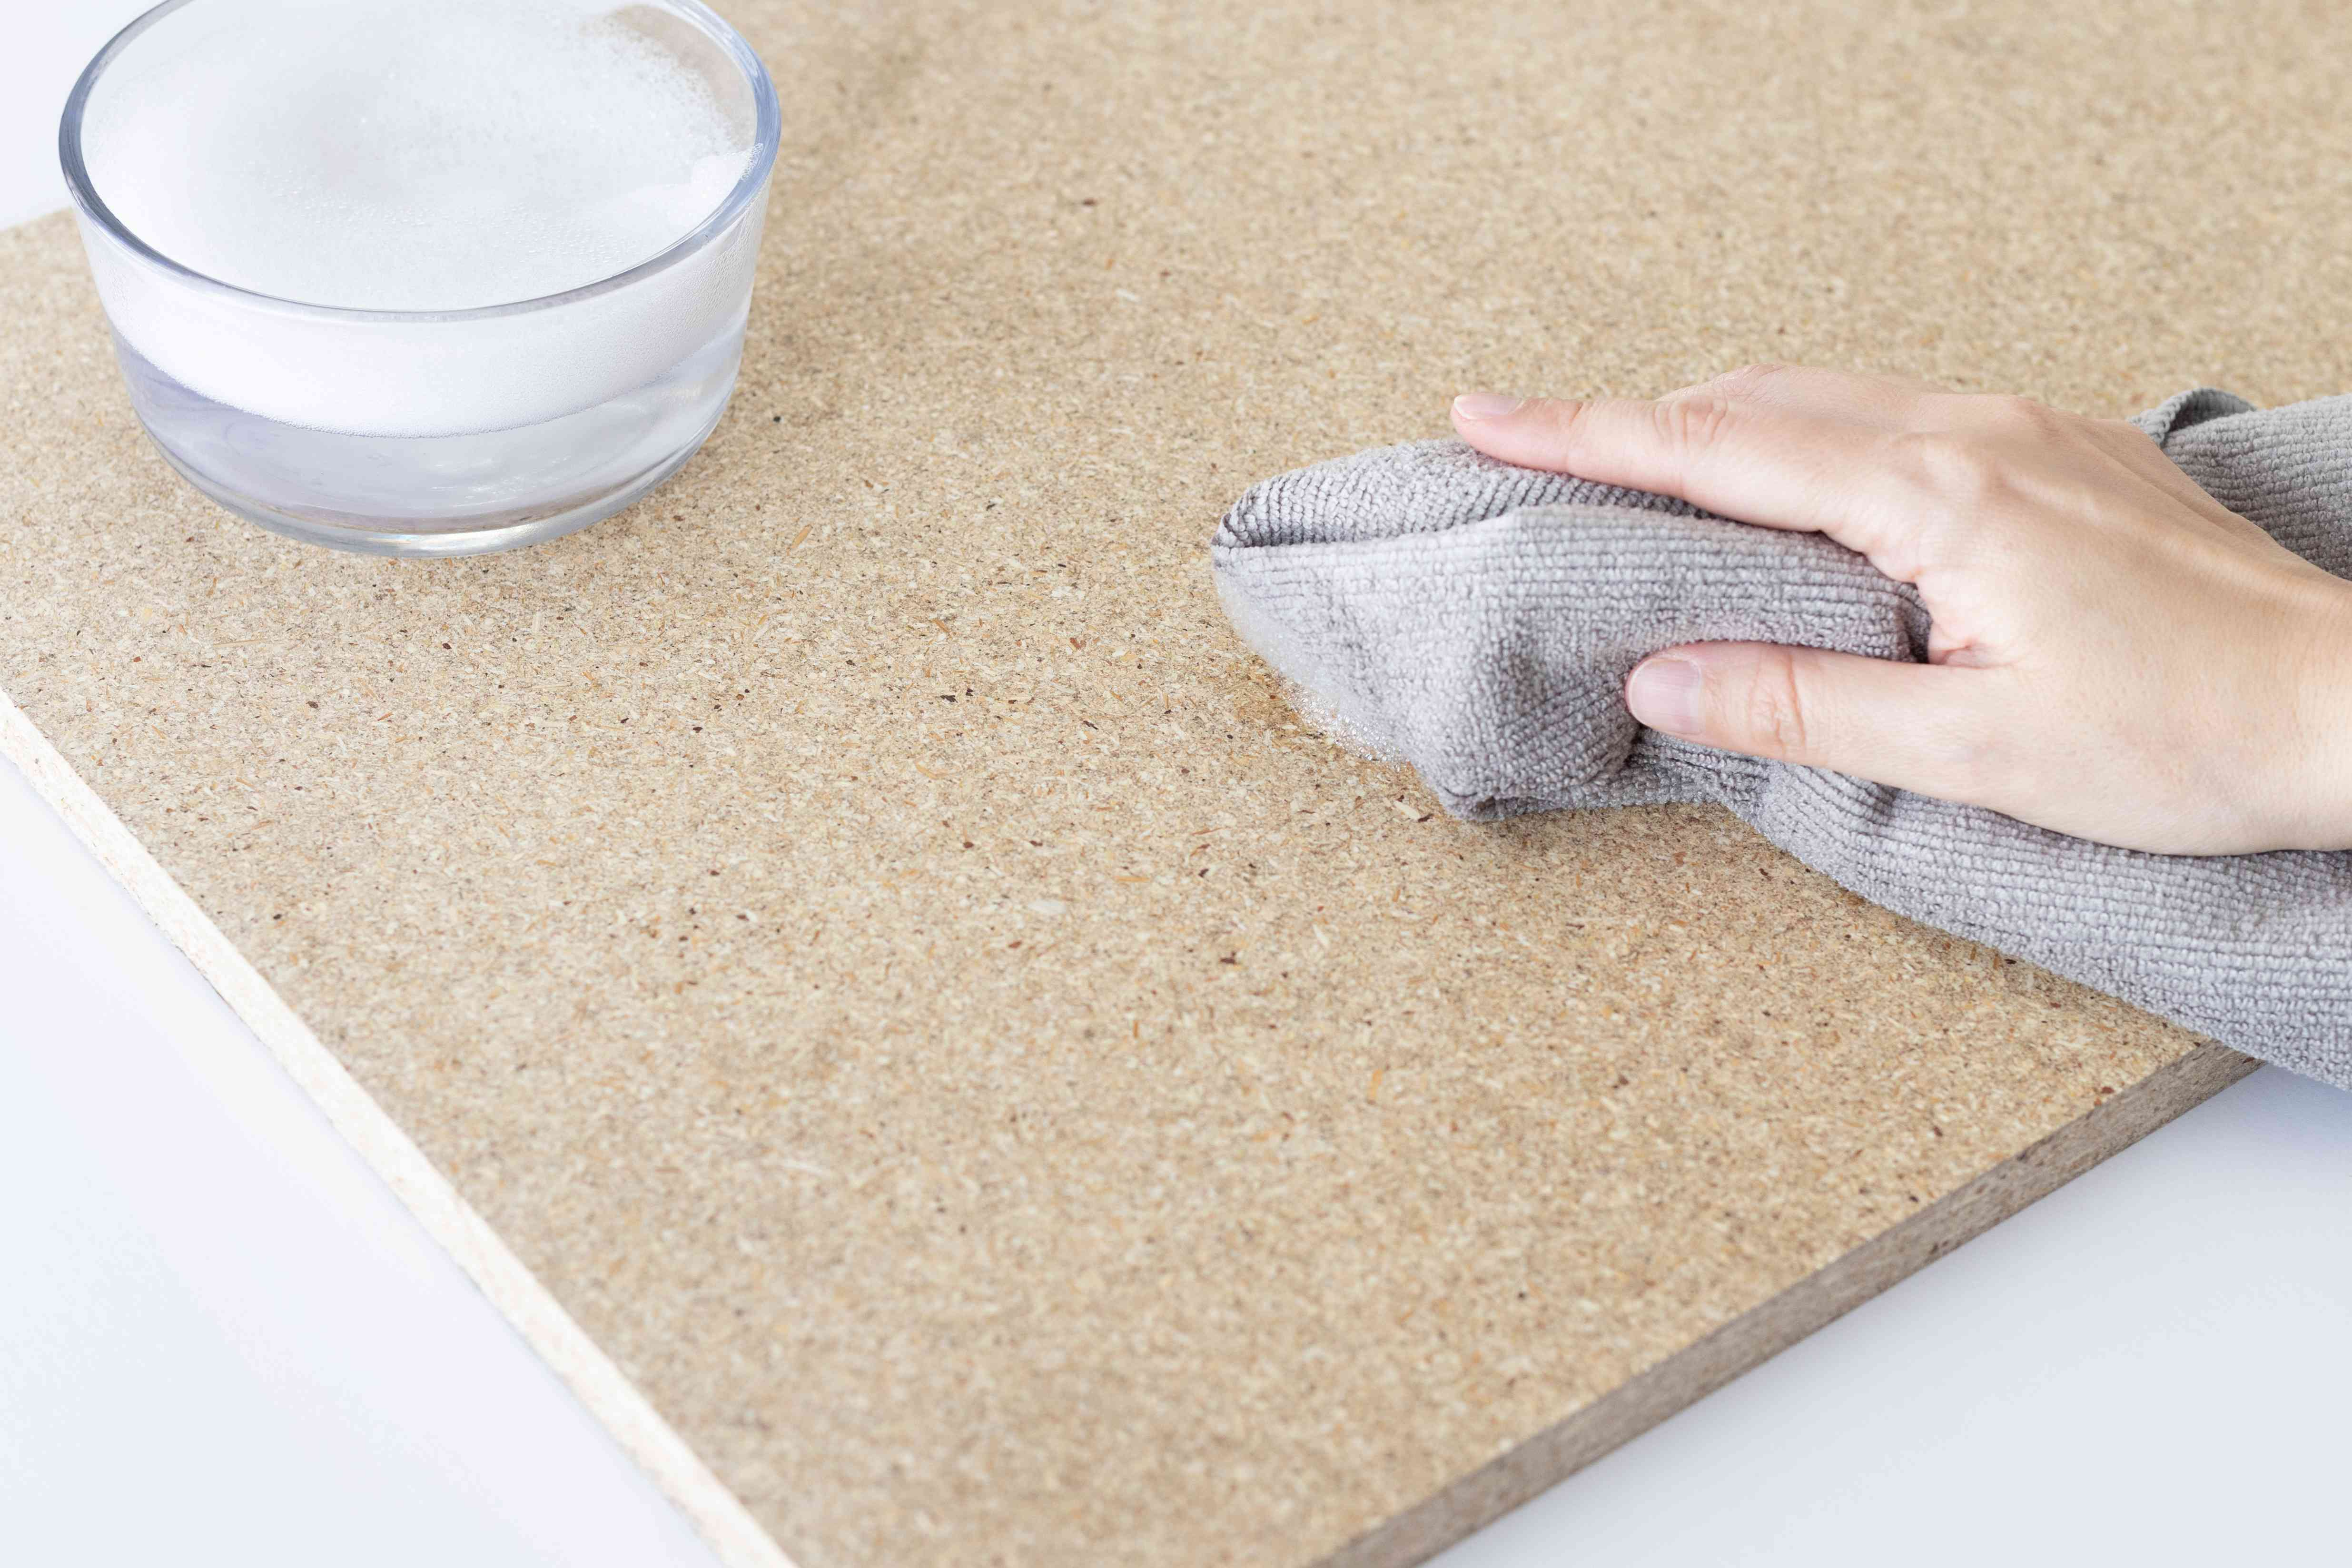 wiping down the shelf surface before applying new shelf liner